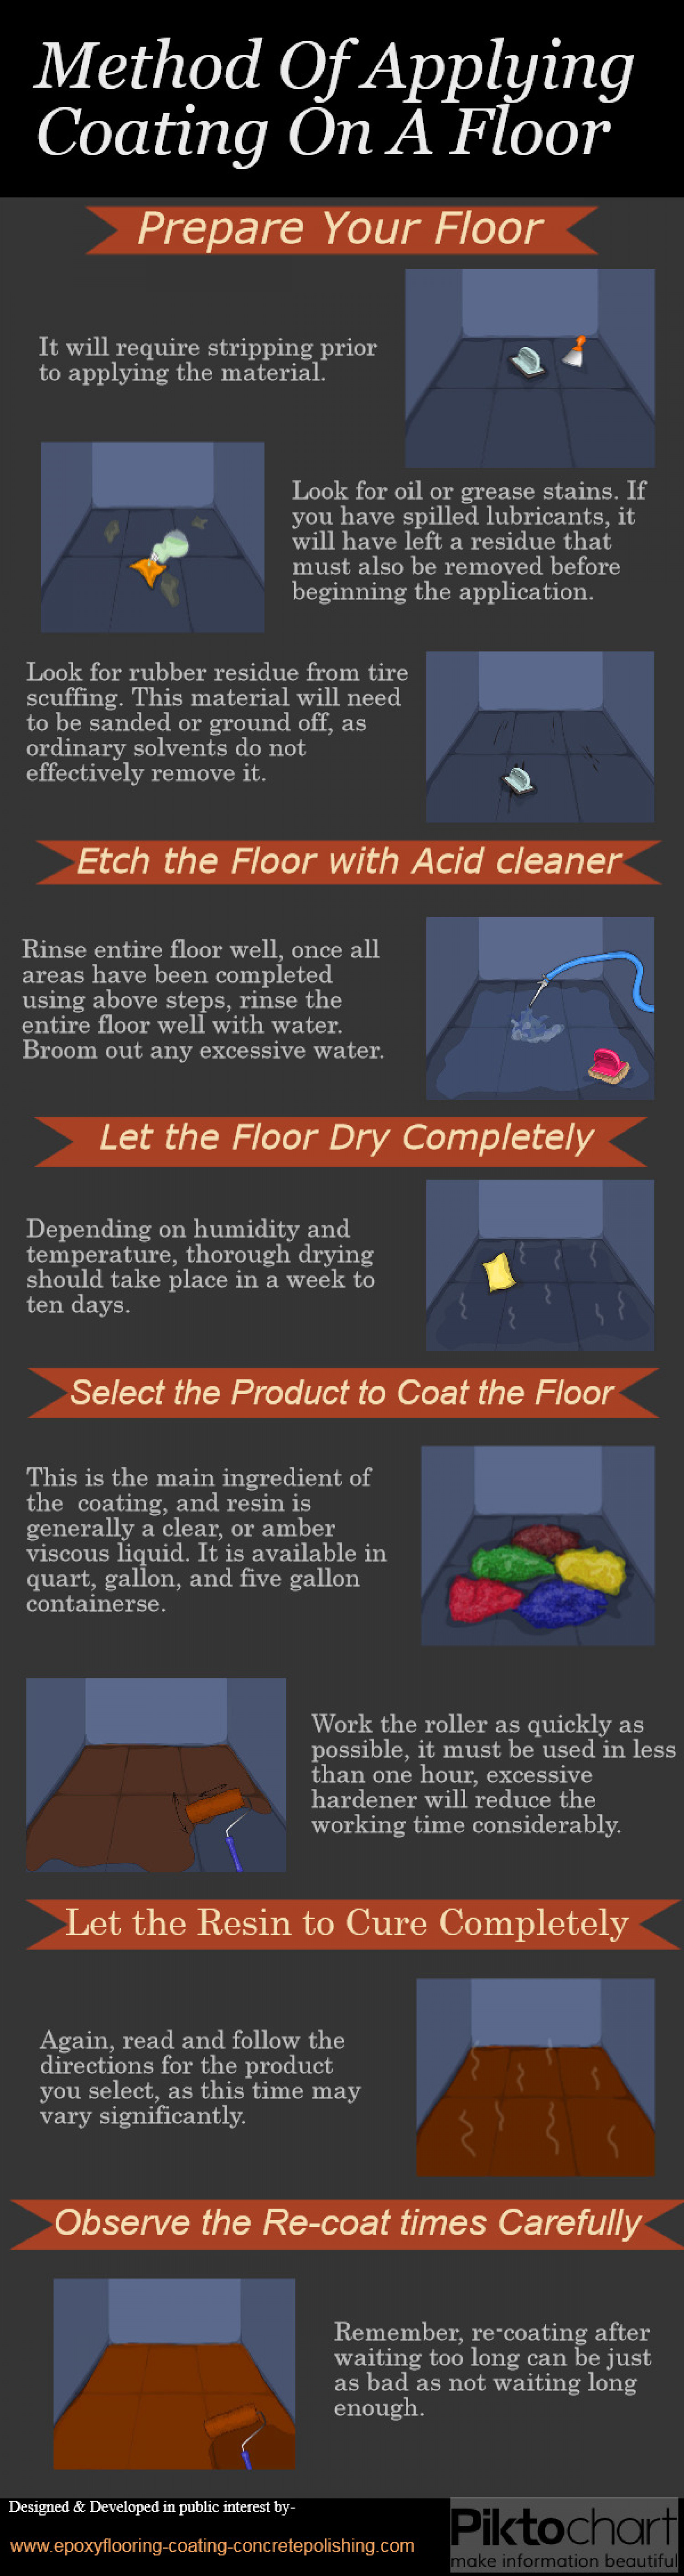 Method of Applying Coating on a Floor Infographic